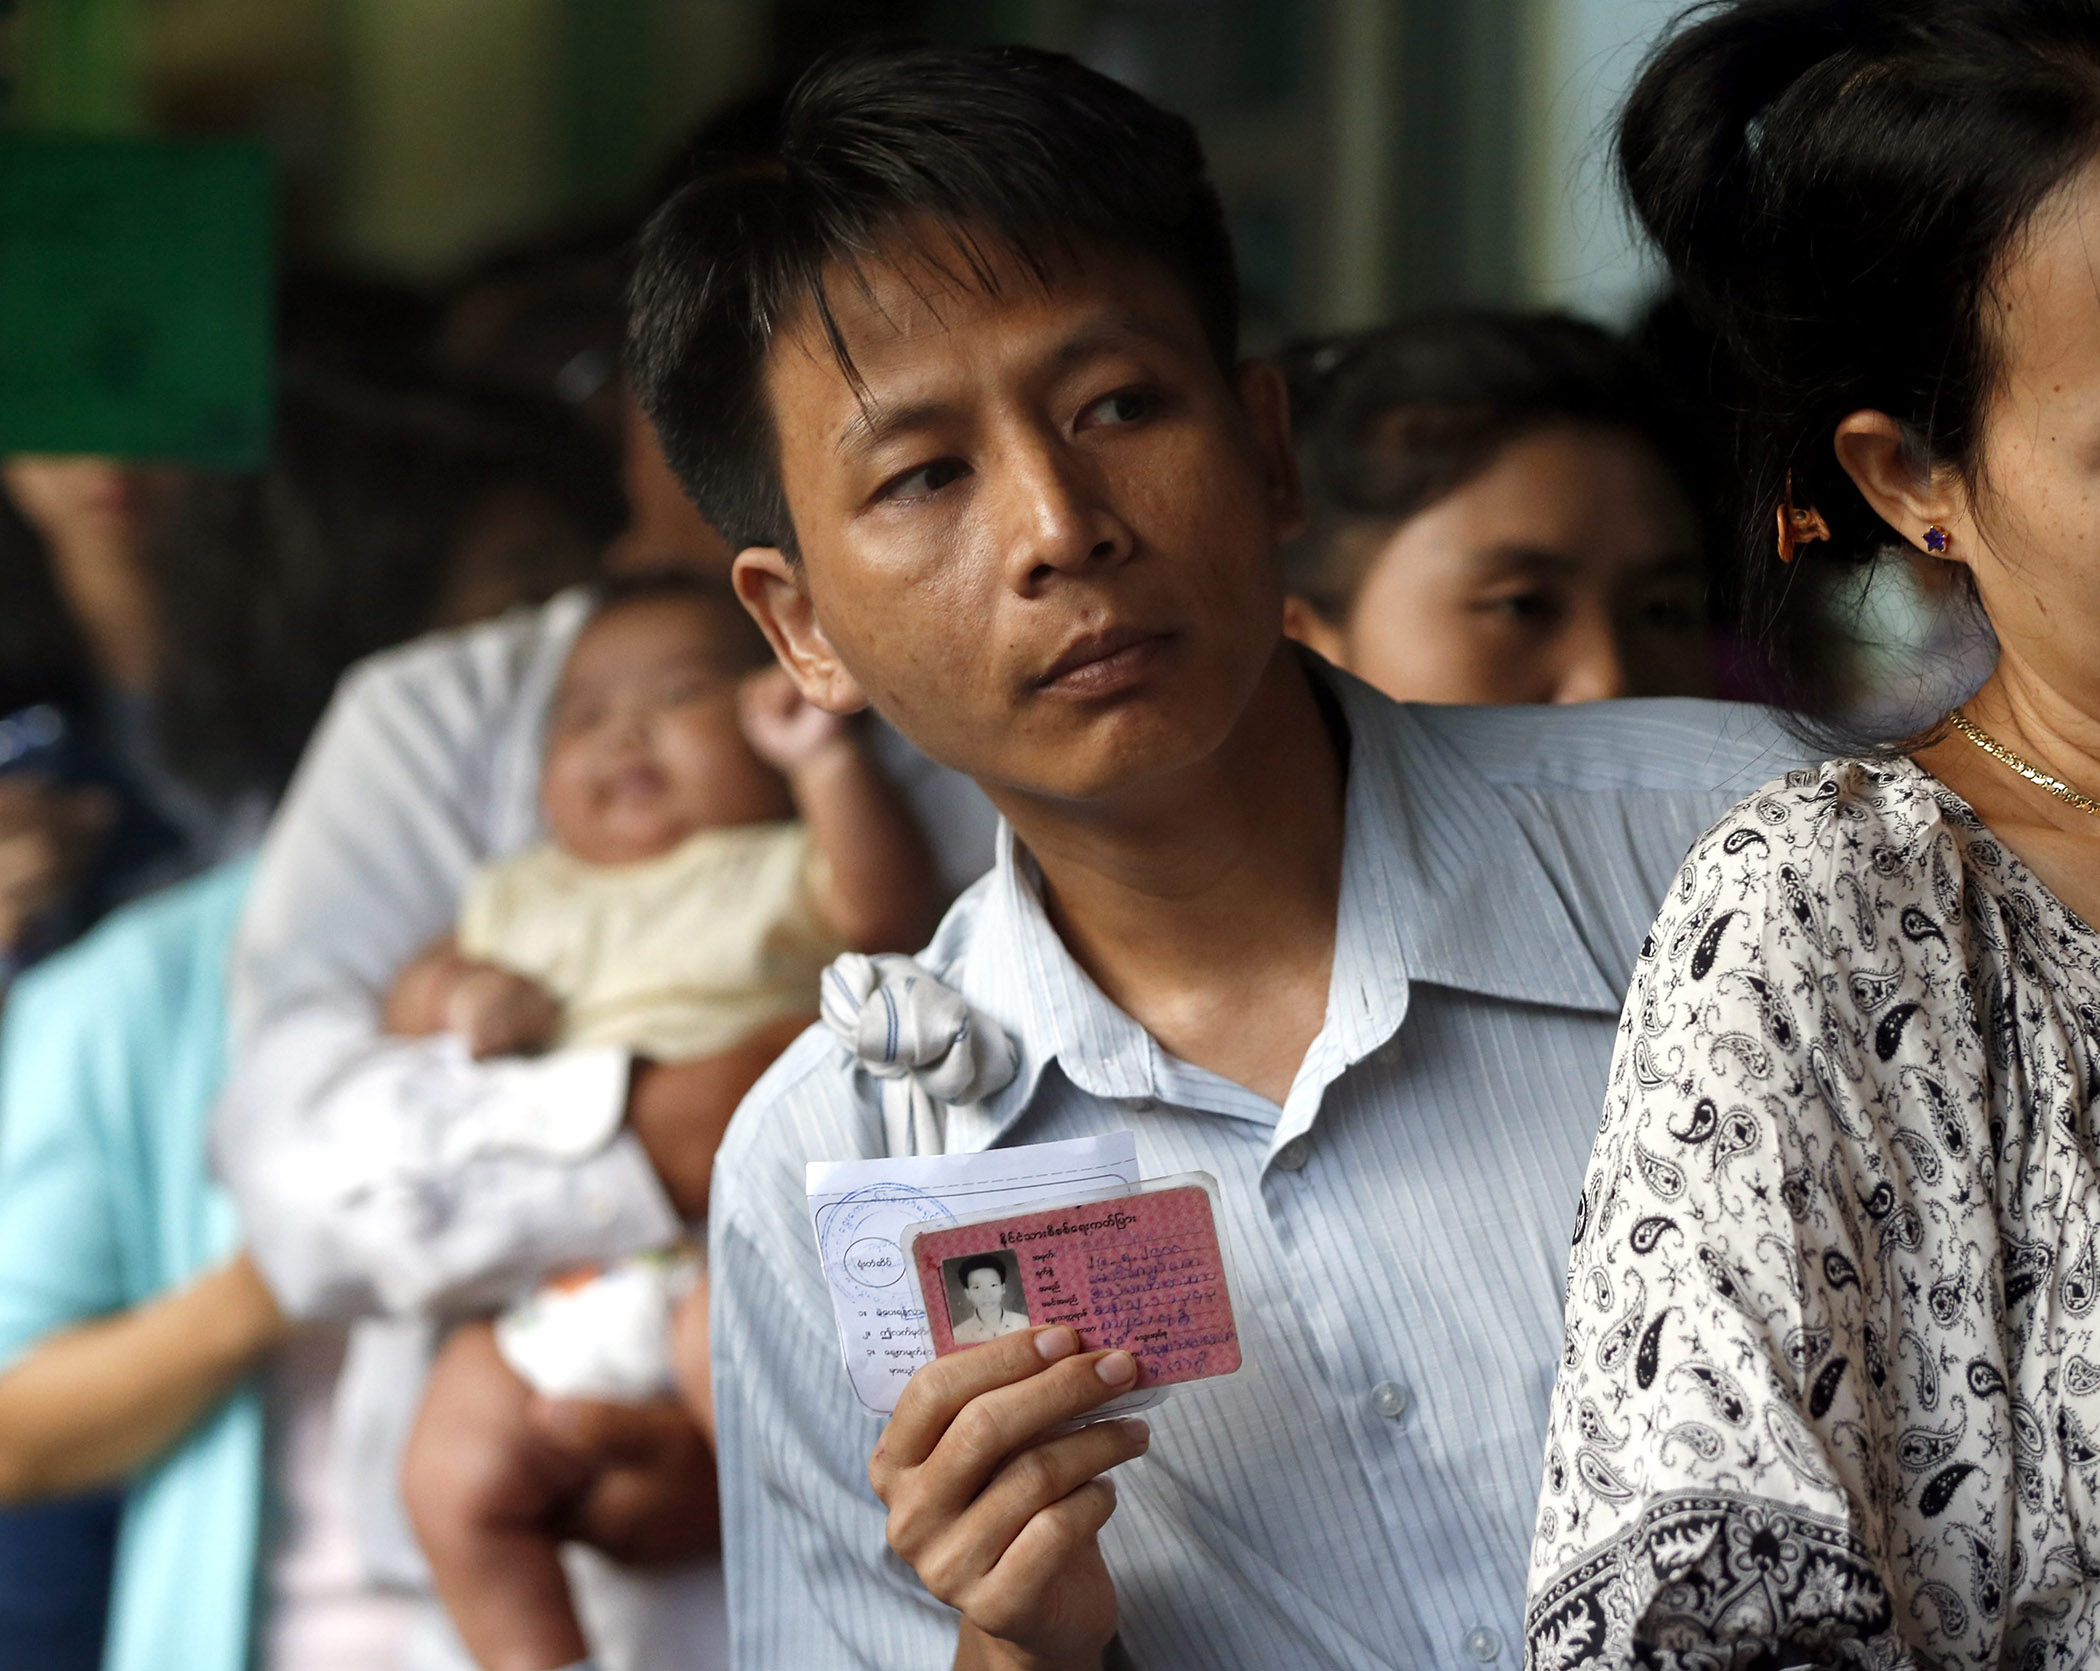 A voter holds his citizen ID card while lining up to cast his ballot at a polling station in Yangon, Burma on Nov. 8, 2015.